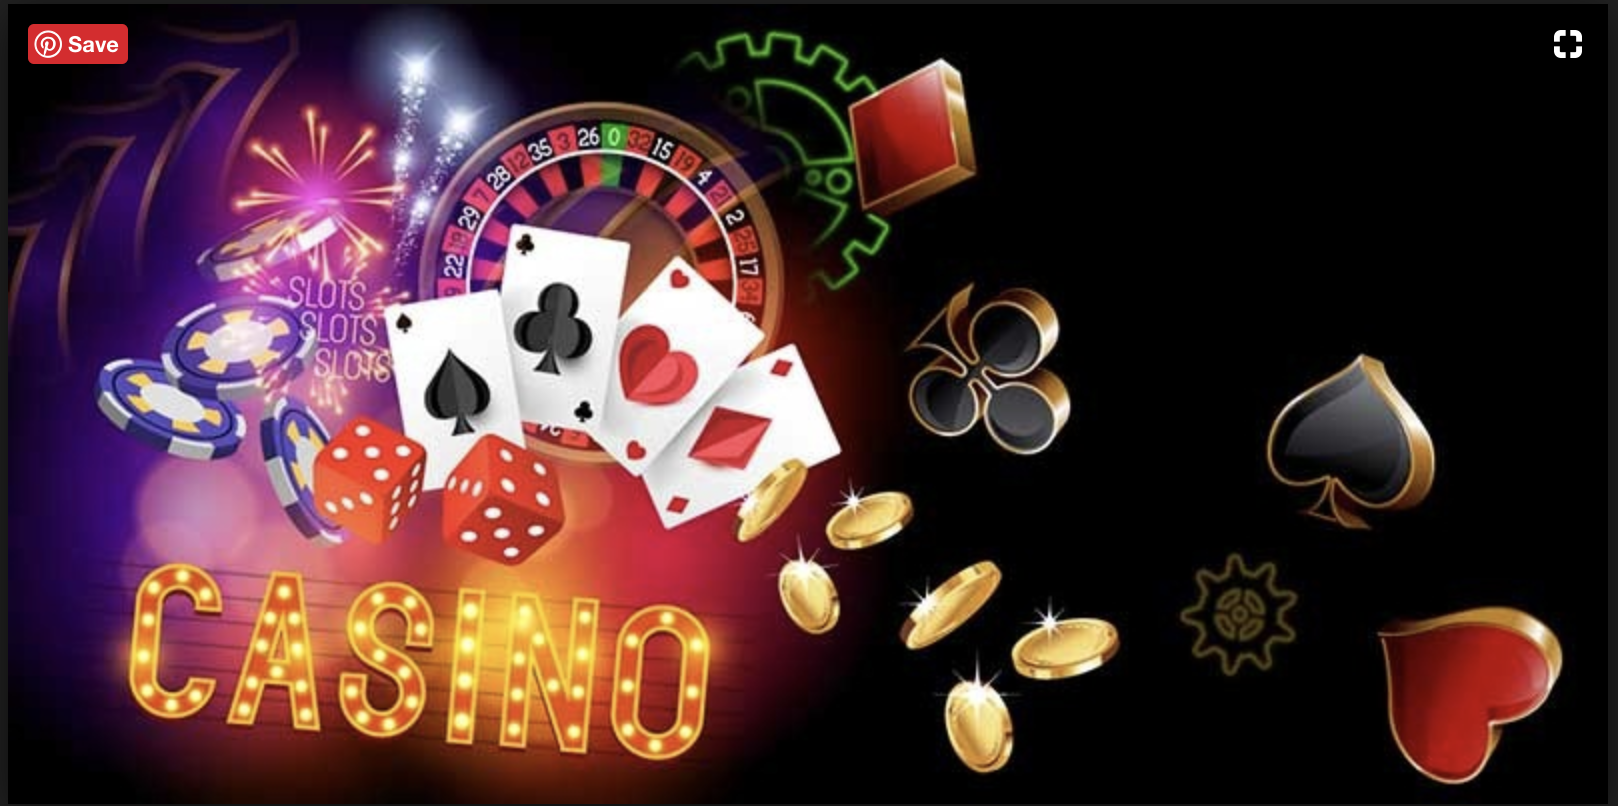 New casino sites UK 2019 is the best way to get the most popular generous  offers. | Play online casino, Casino games, Online casino games